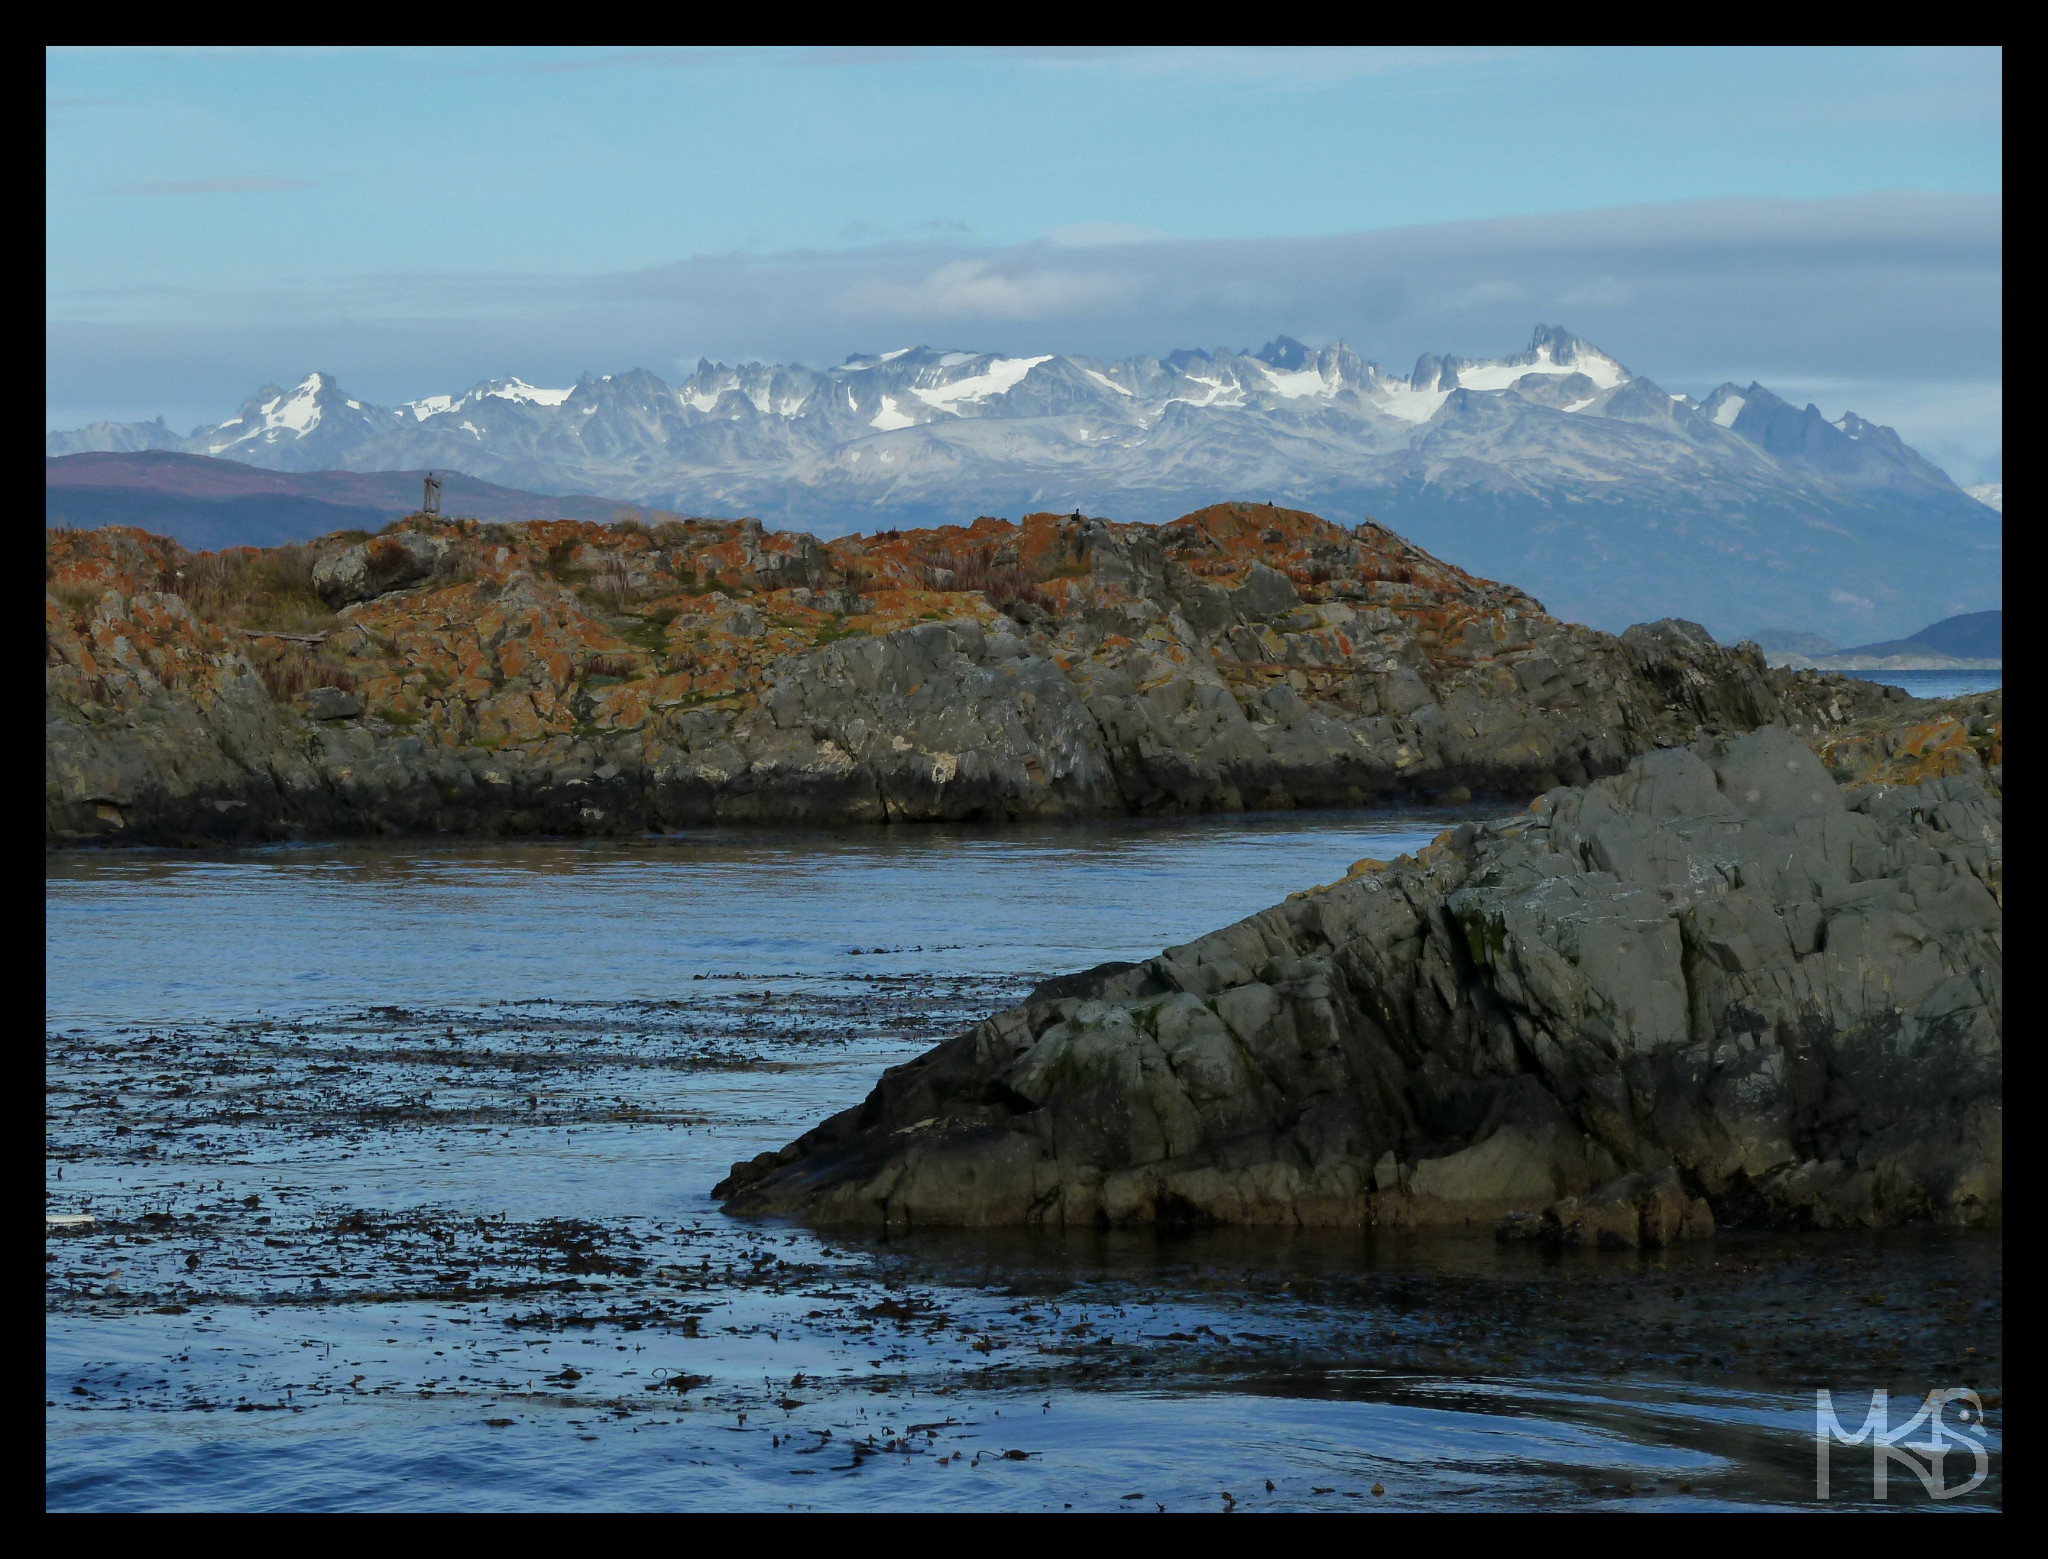 Beagle Channel, Argentina